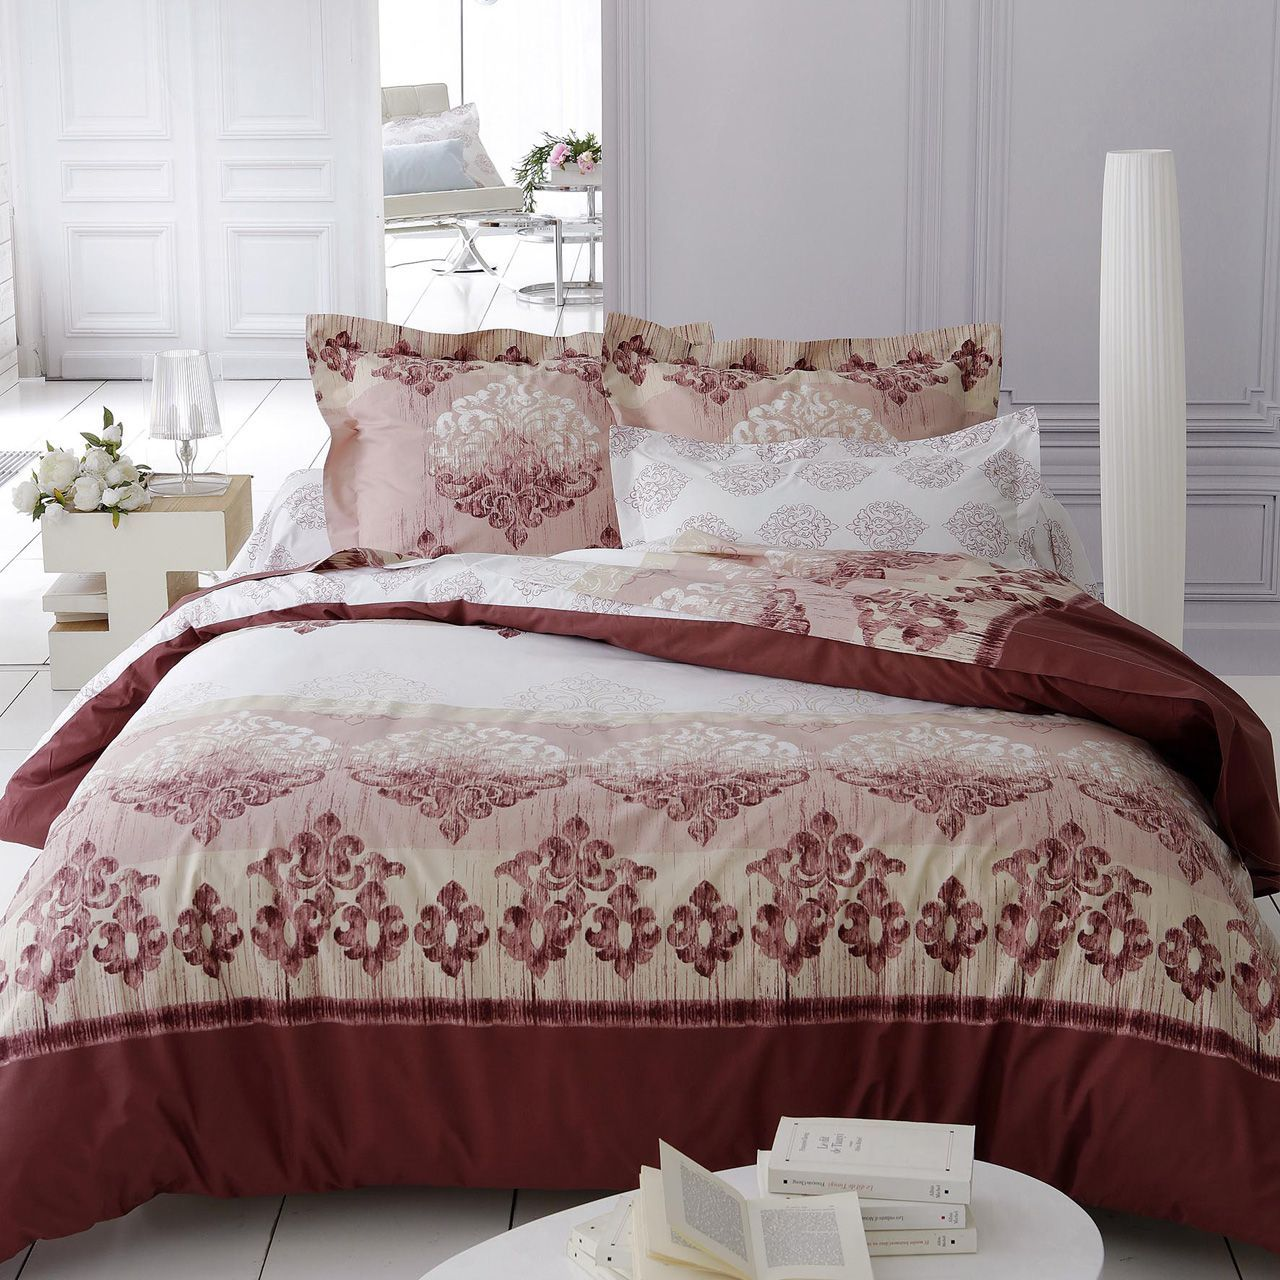 drap housse v rone marsala blanc motifs baroques percale. Black Bedroom Furniture Sets. Home Design Ideas